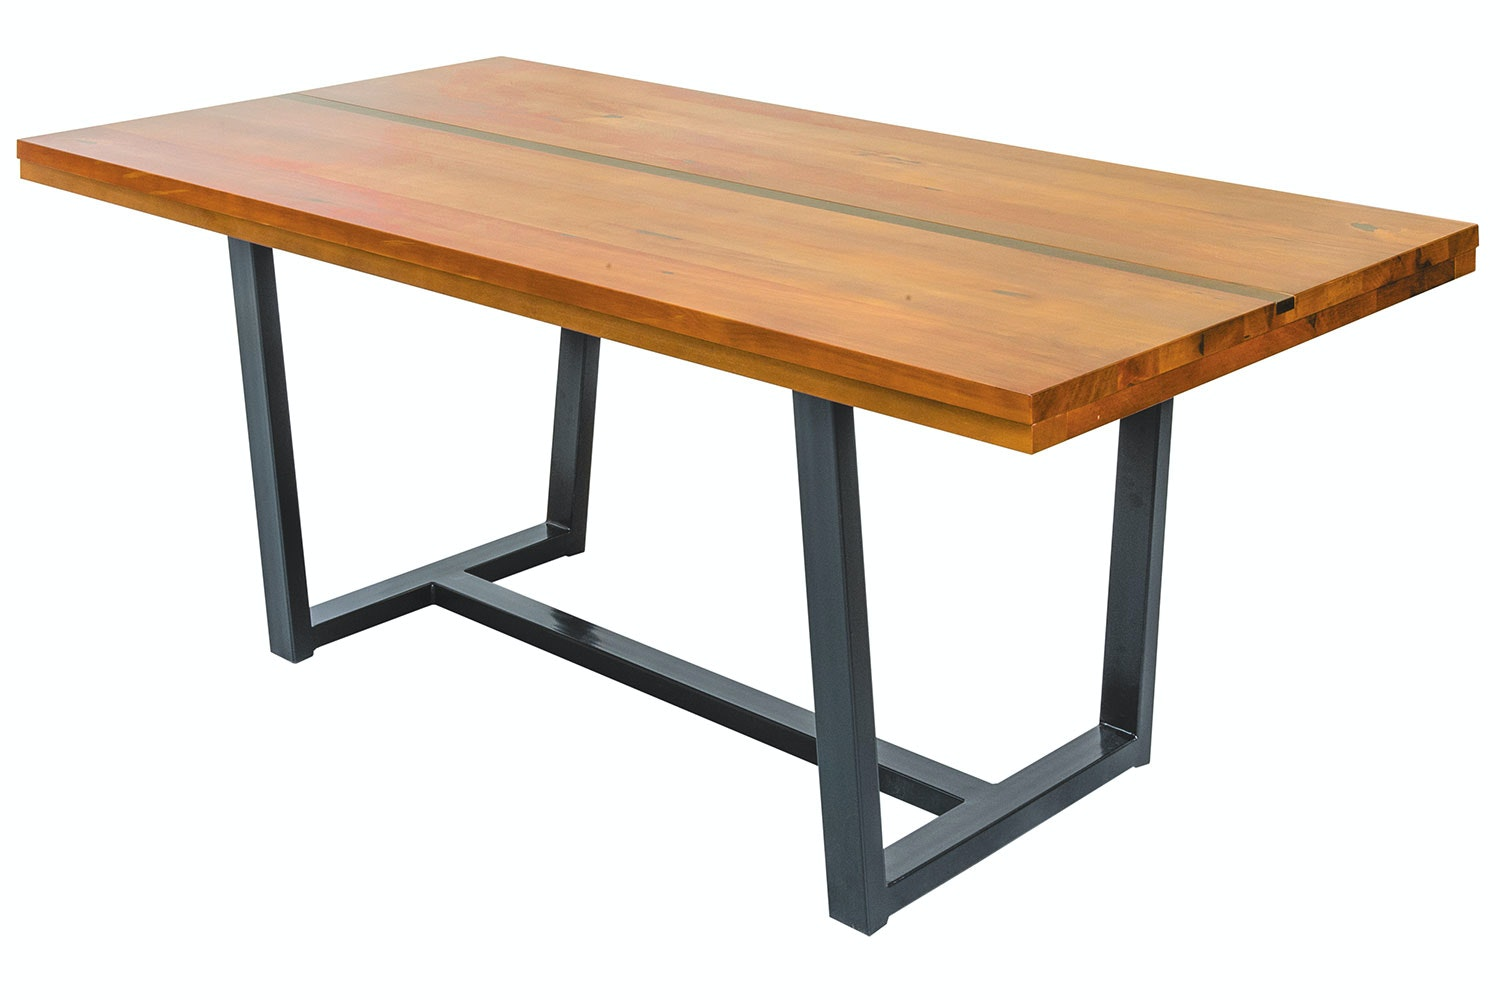 Matai Bay 1600 x 1000 Dining Table by Sorenson Furniture